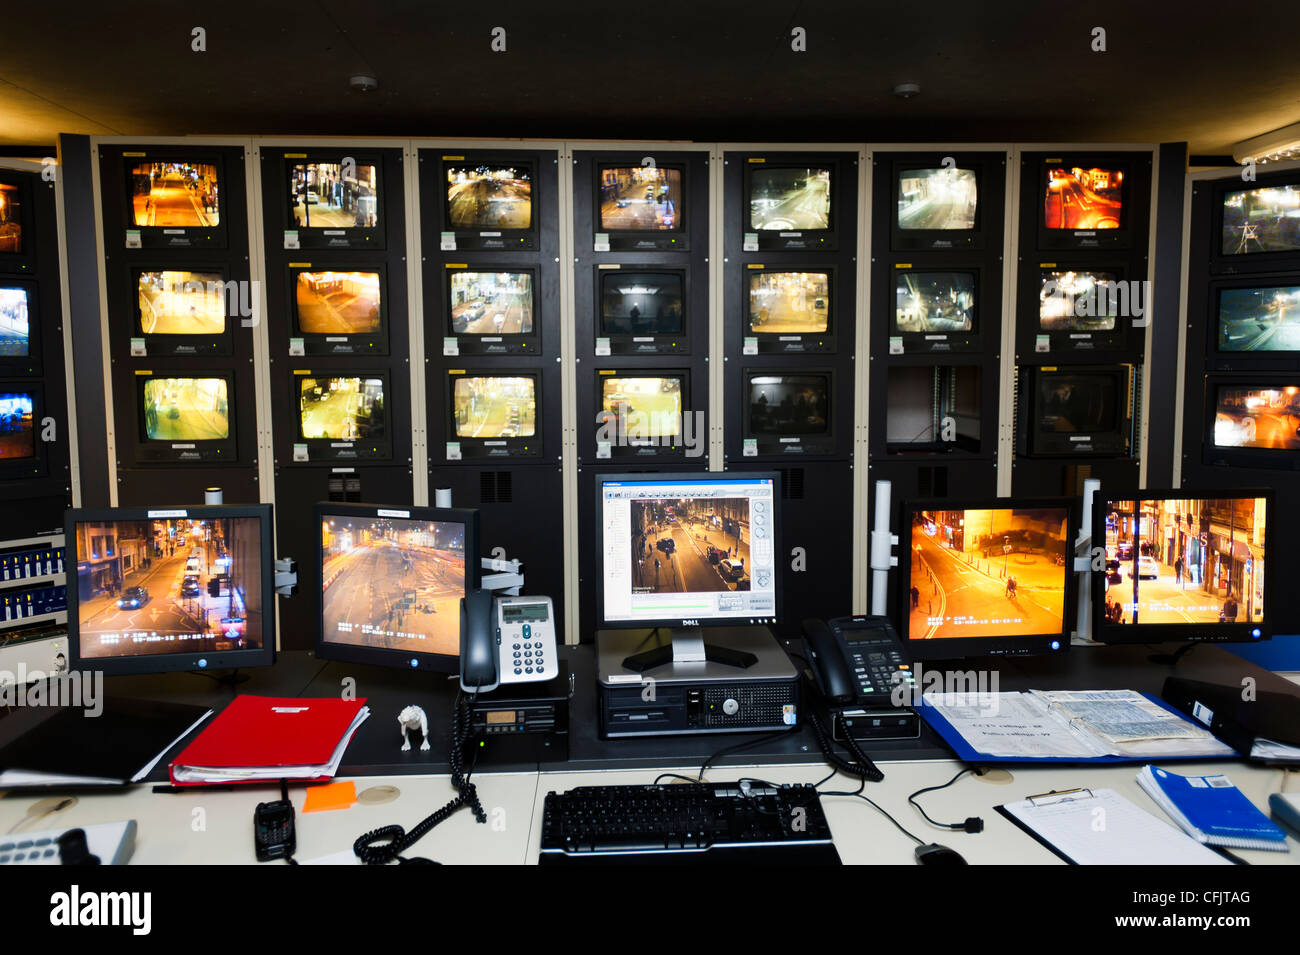 Banks of screens at a local authority operated CCTV closed circuit television suite monitoring night time activity - Stock Image